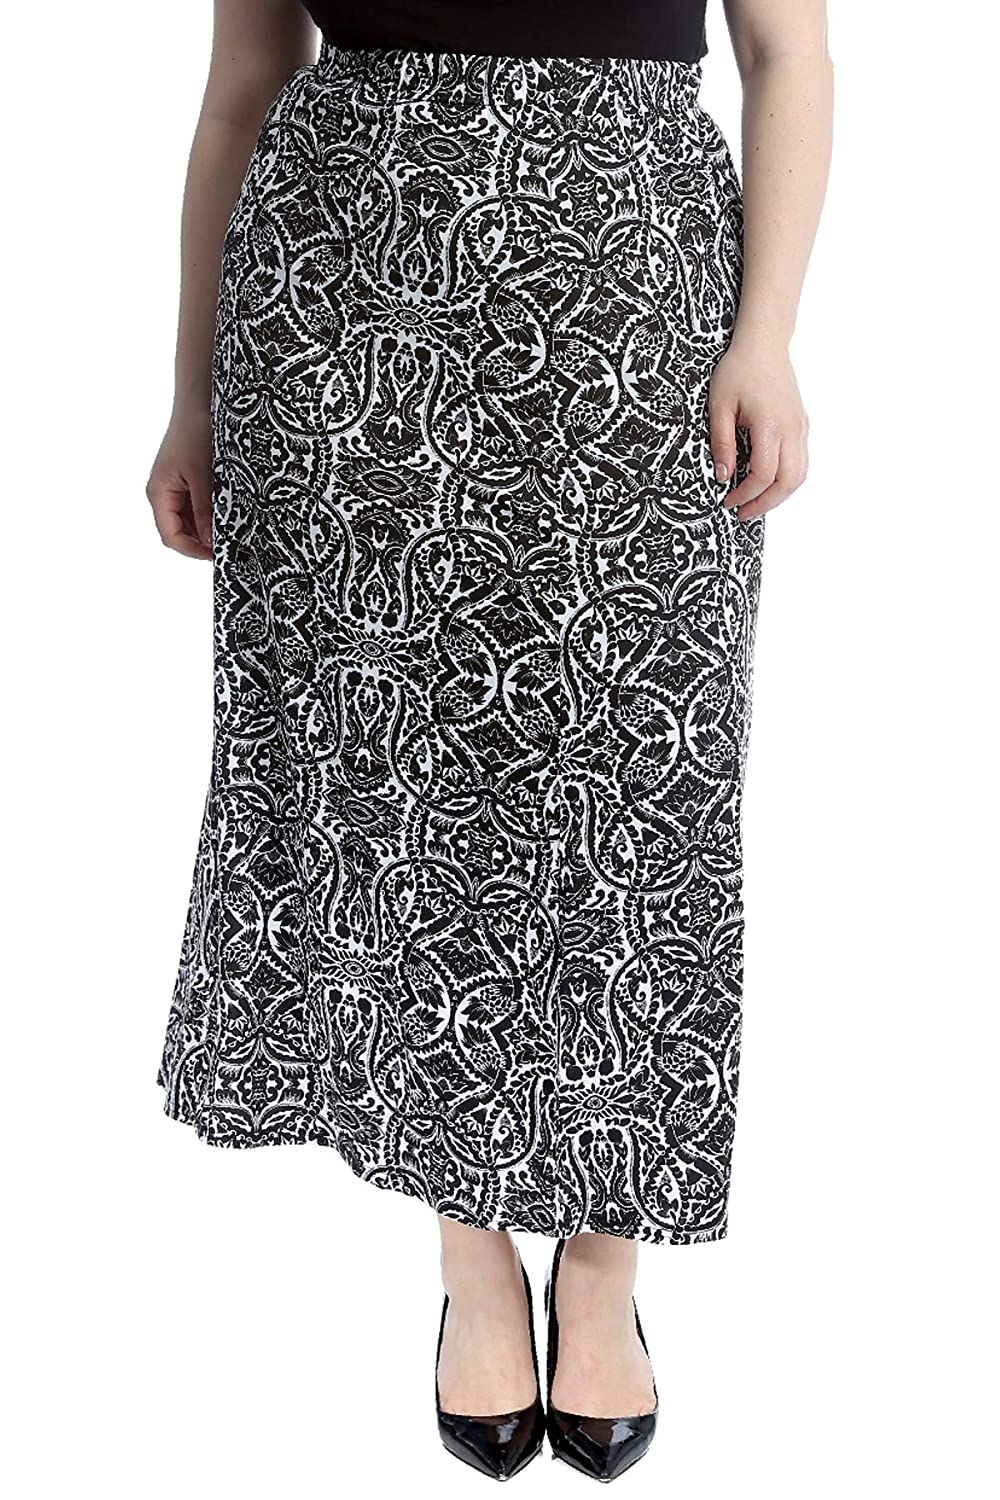 Nouvelle Collection SKIRT レディース B07G8DB7T1 US Size 22-24|ホワイト ホワイト US Size 22-24